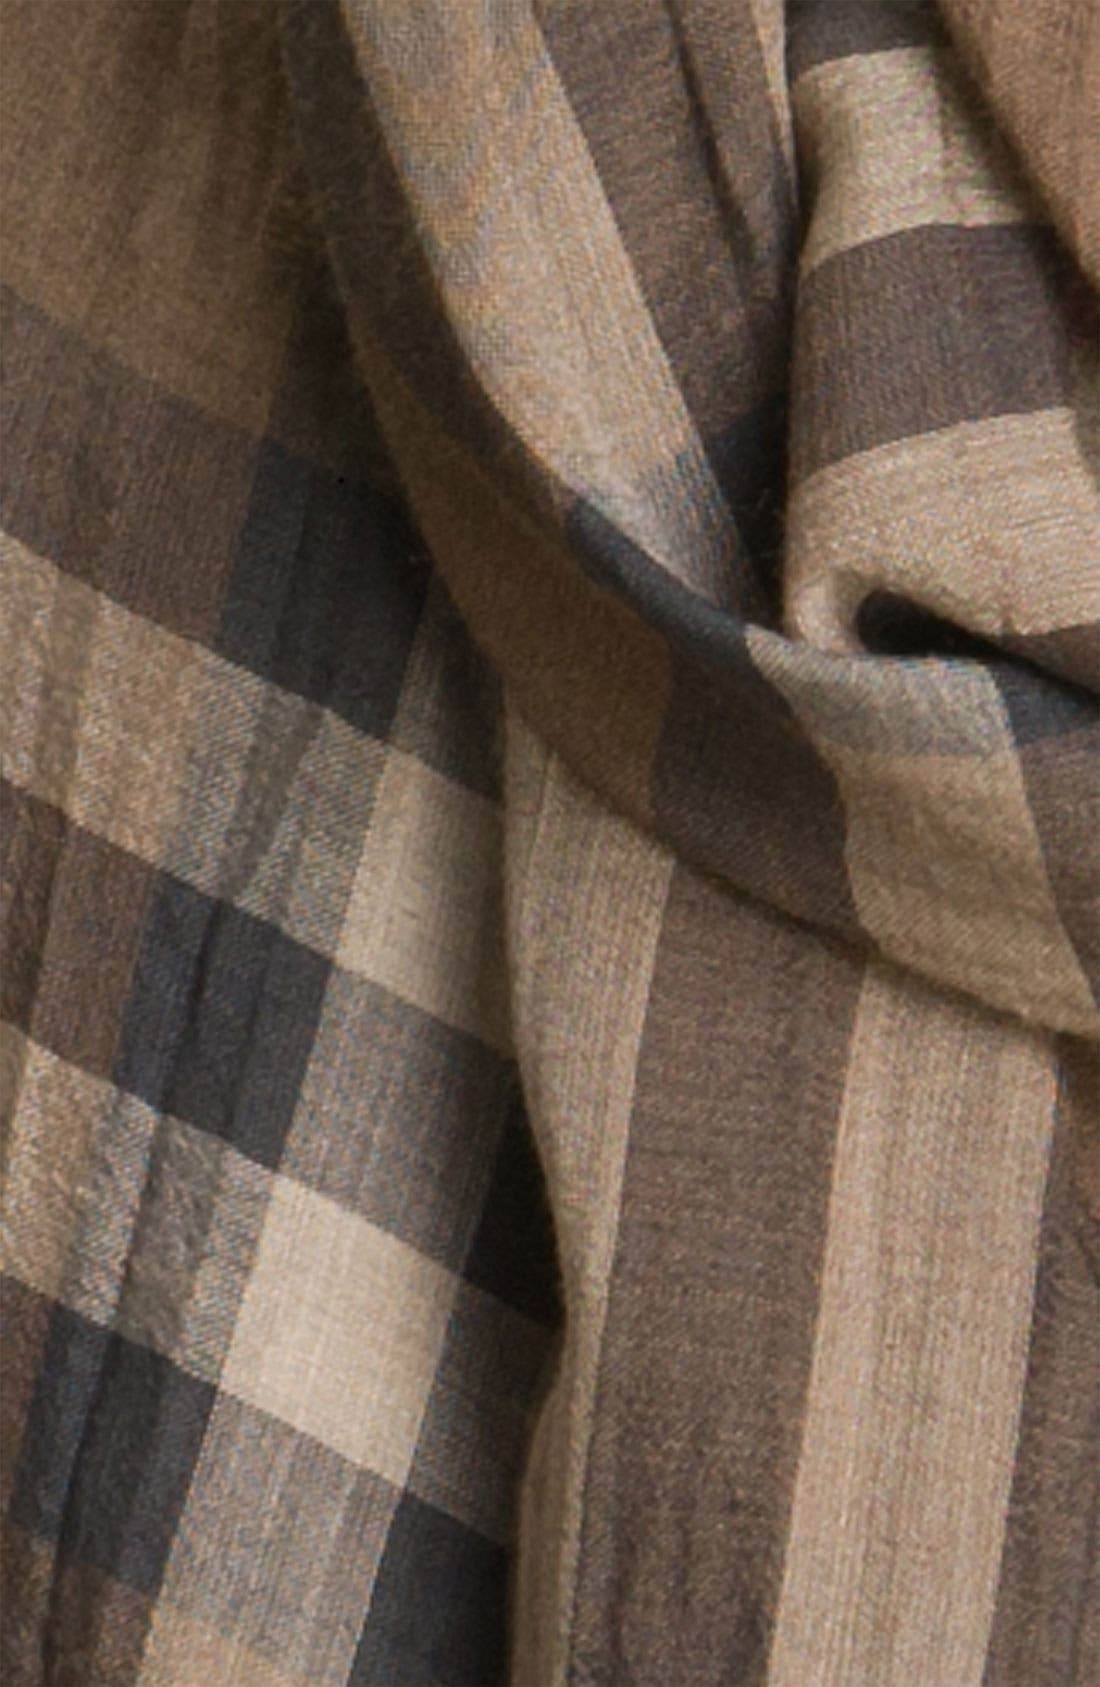 Giant Check Print Wool & Silk Scarf,                             Alternate thumbnail 79, color,